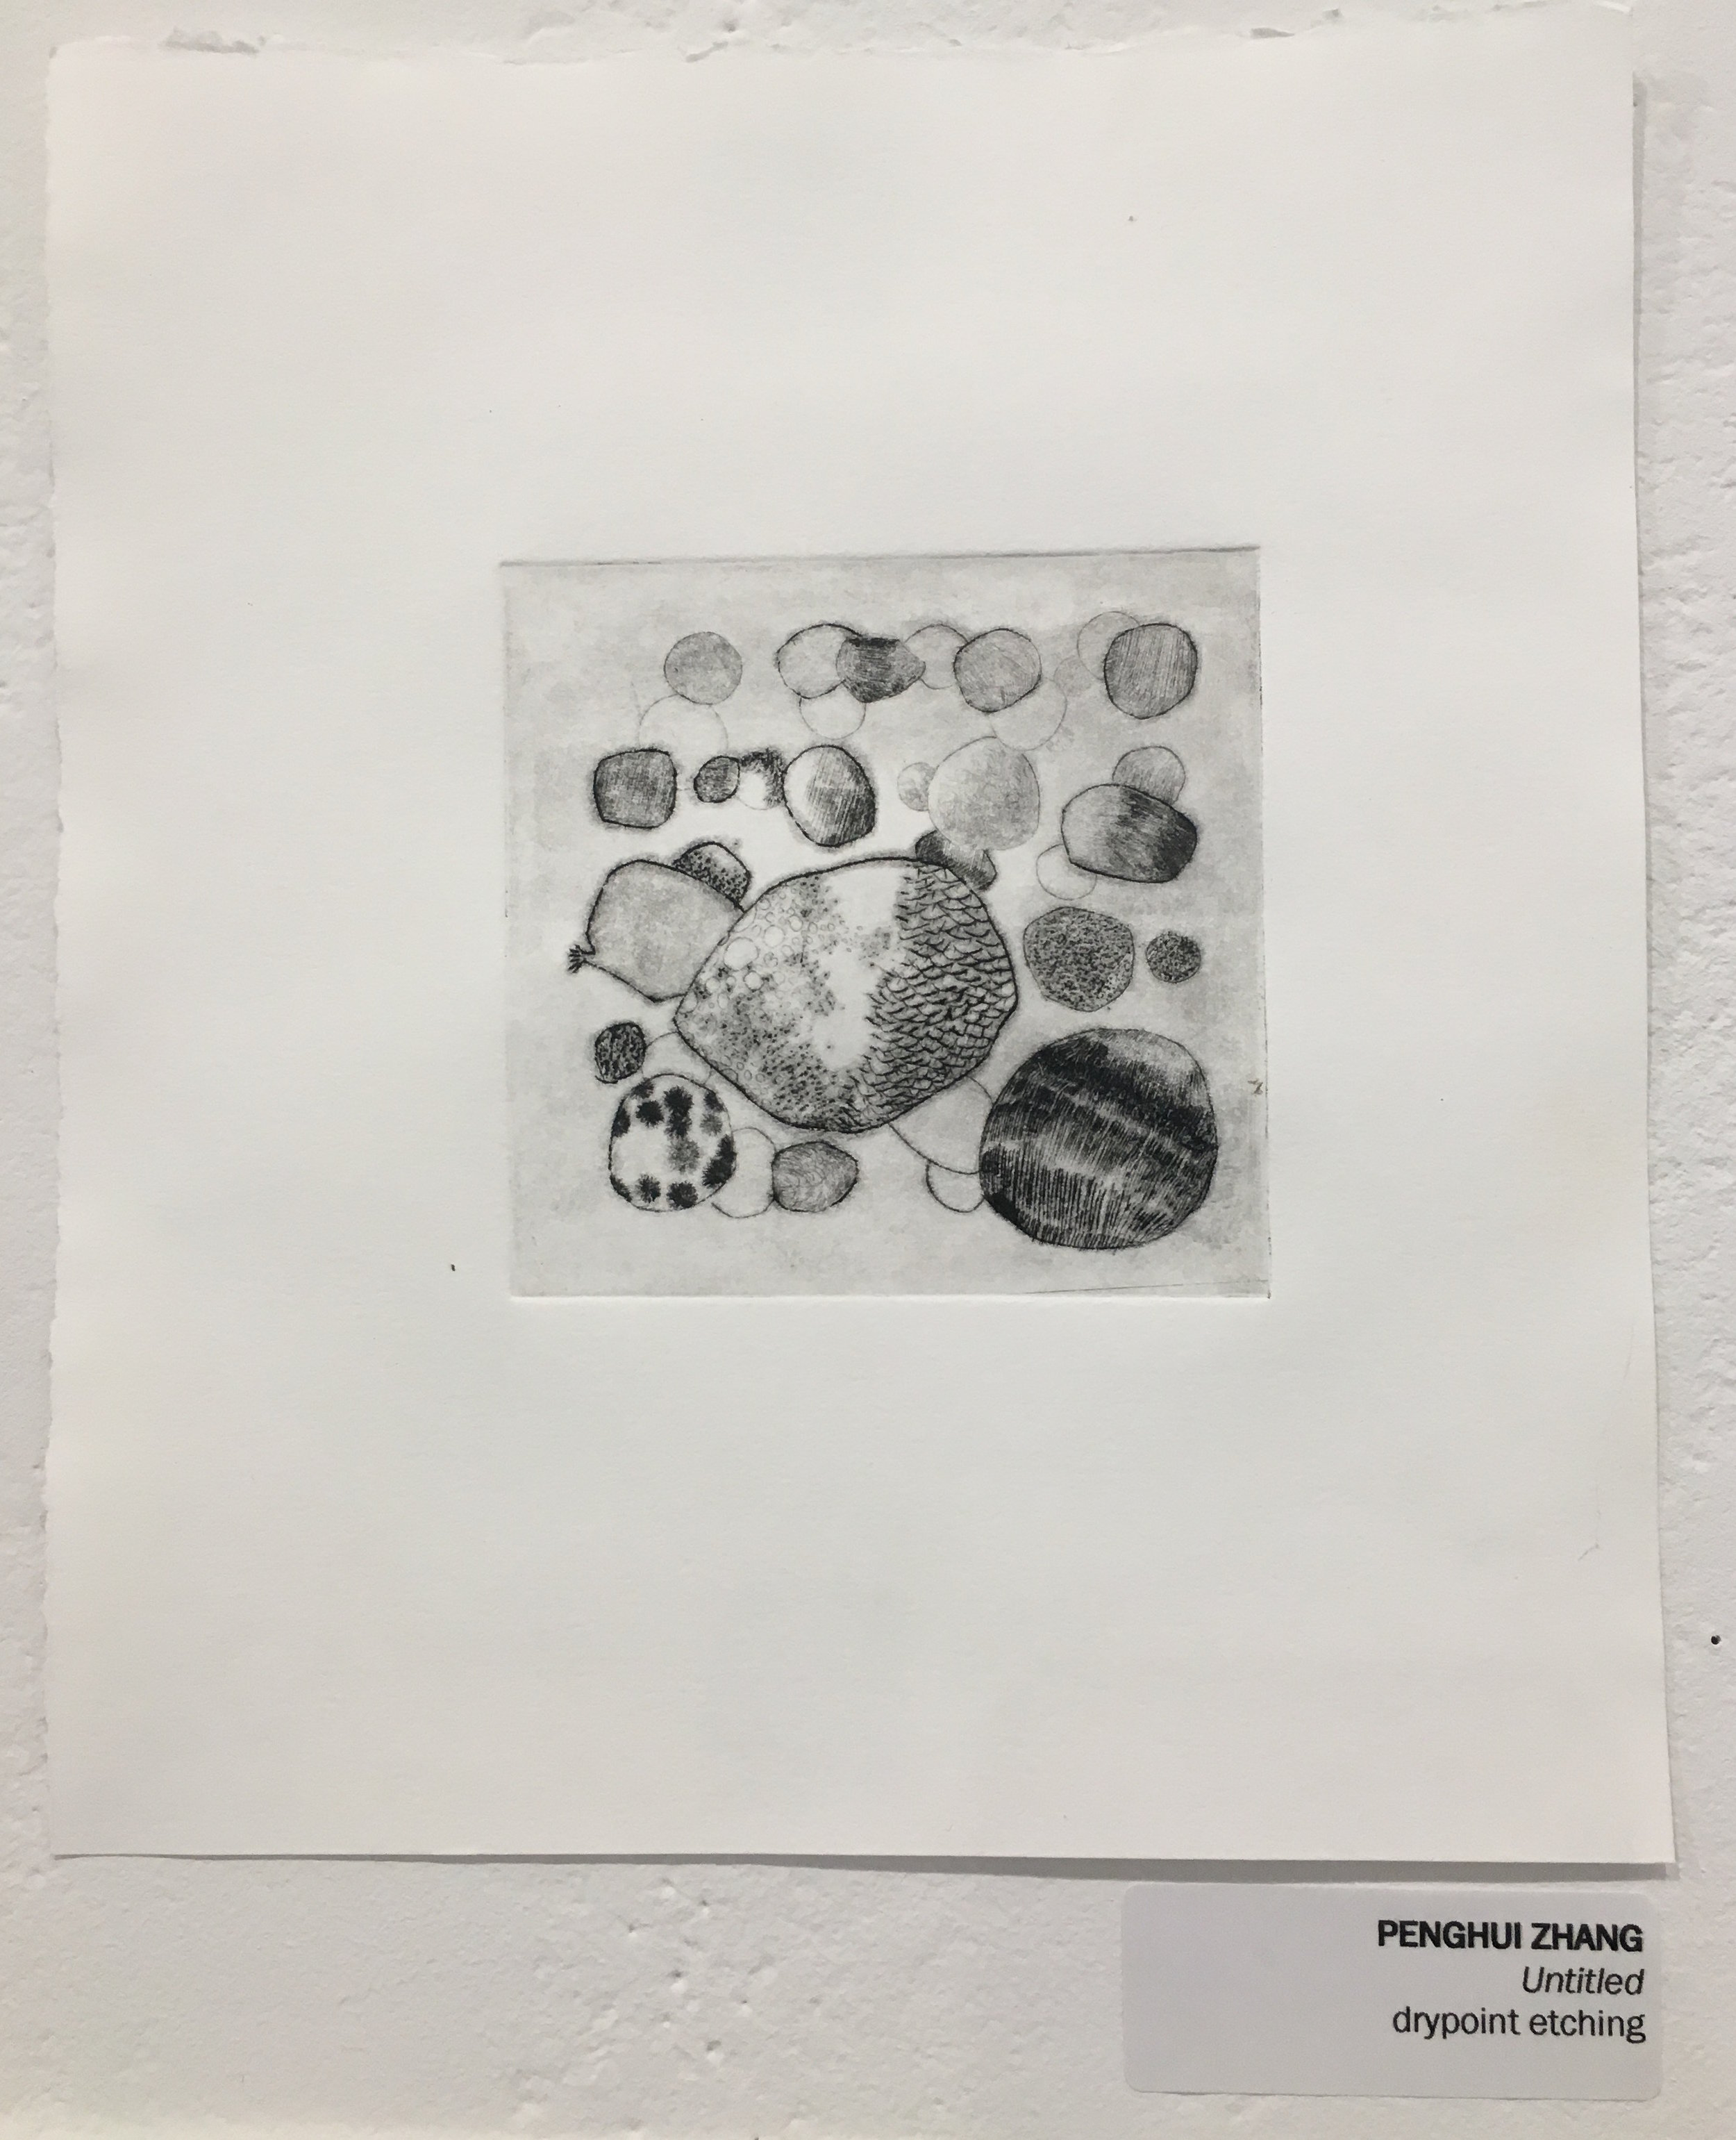 """Penghui Zhang, """"Untitled"""" (drypoint etching)"""